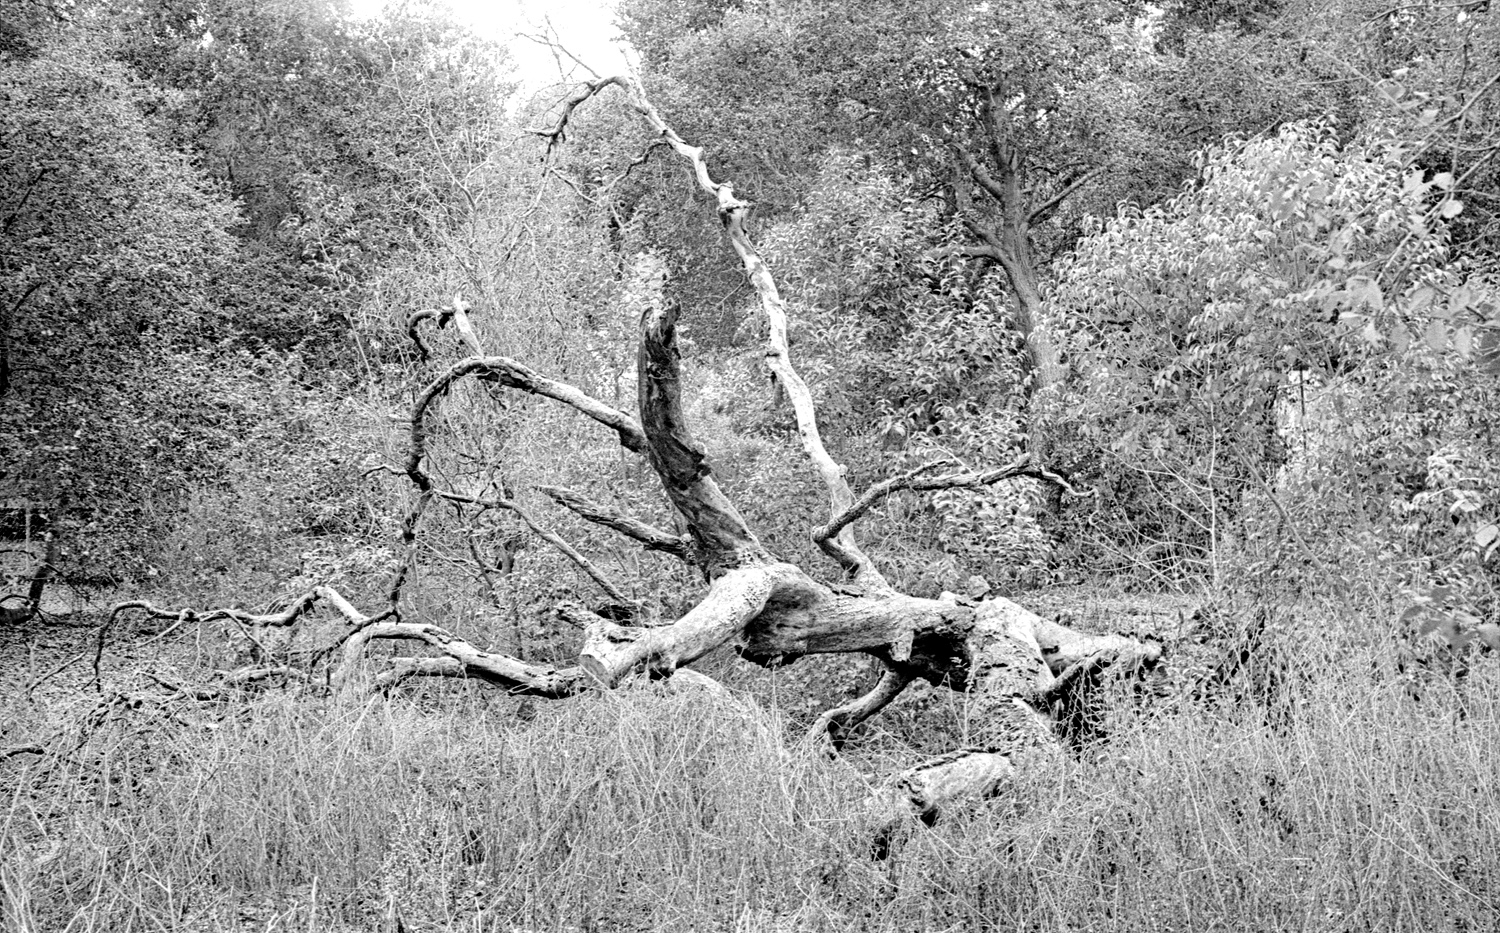 Fed2 183 Jupiter8 XX PyrocatHD dead tree.jpg